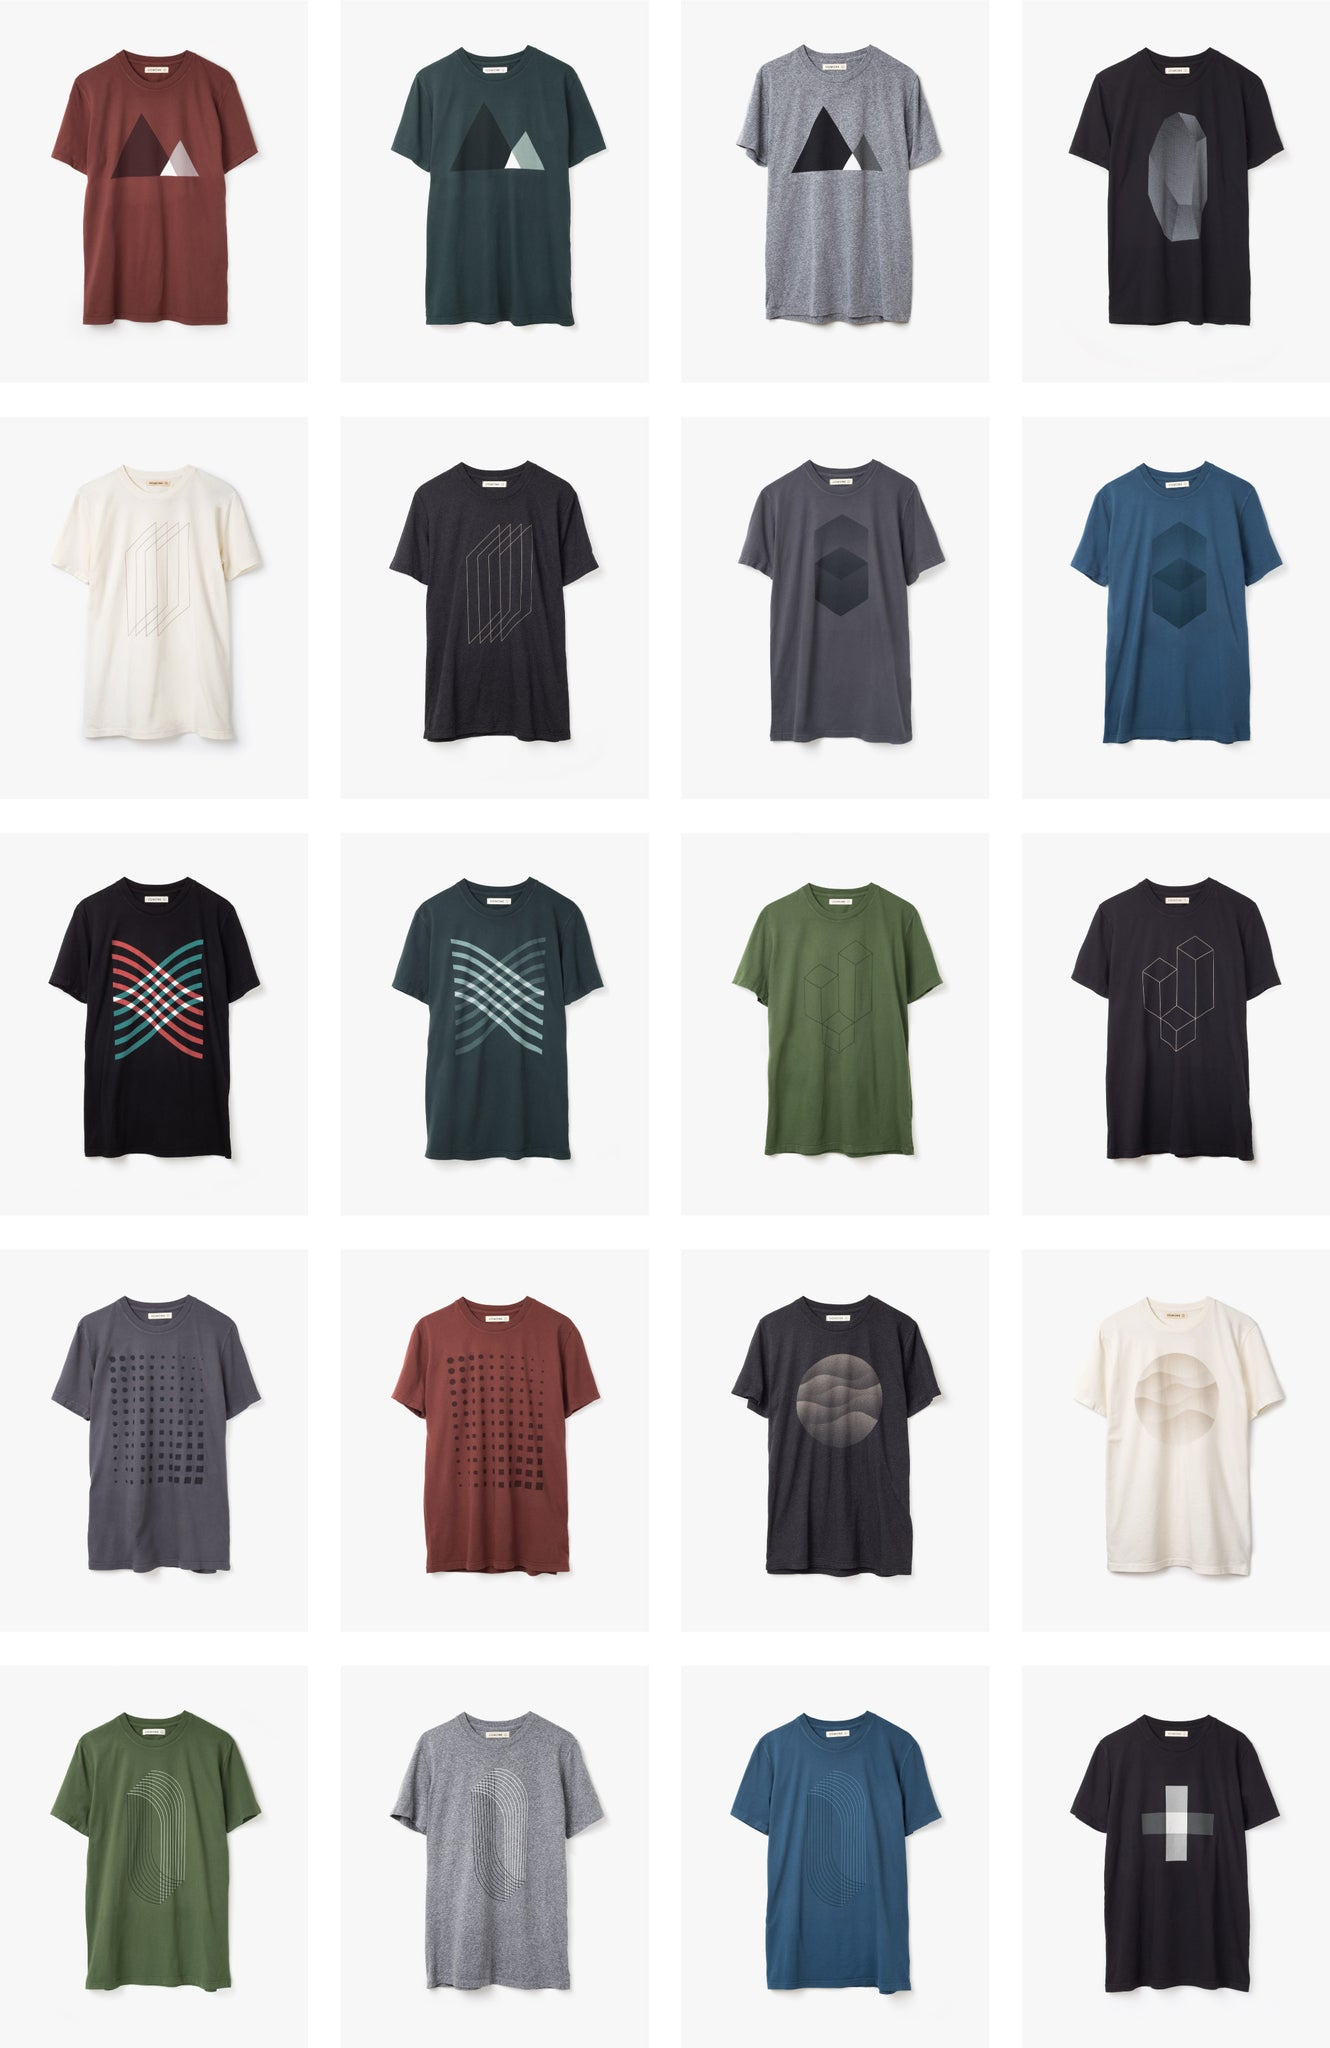 Introducing the New Ugmonk: Custom Tees, Products and Friends Introducing the New Ugmonk: Custom Tees, Products and Friends